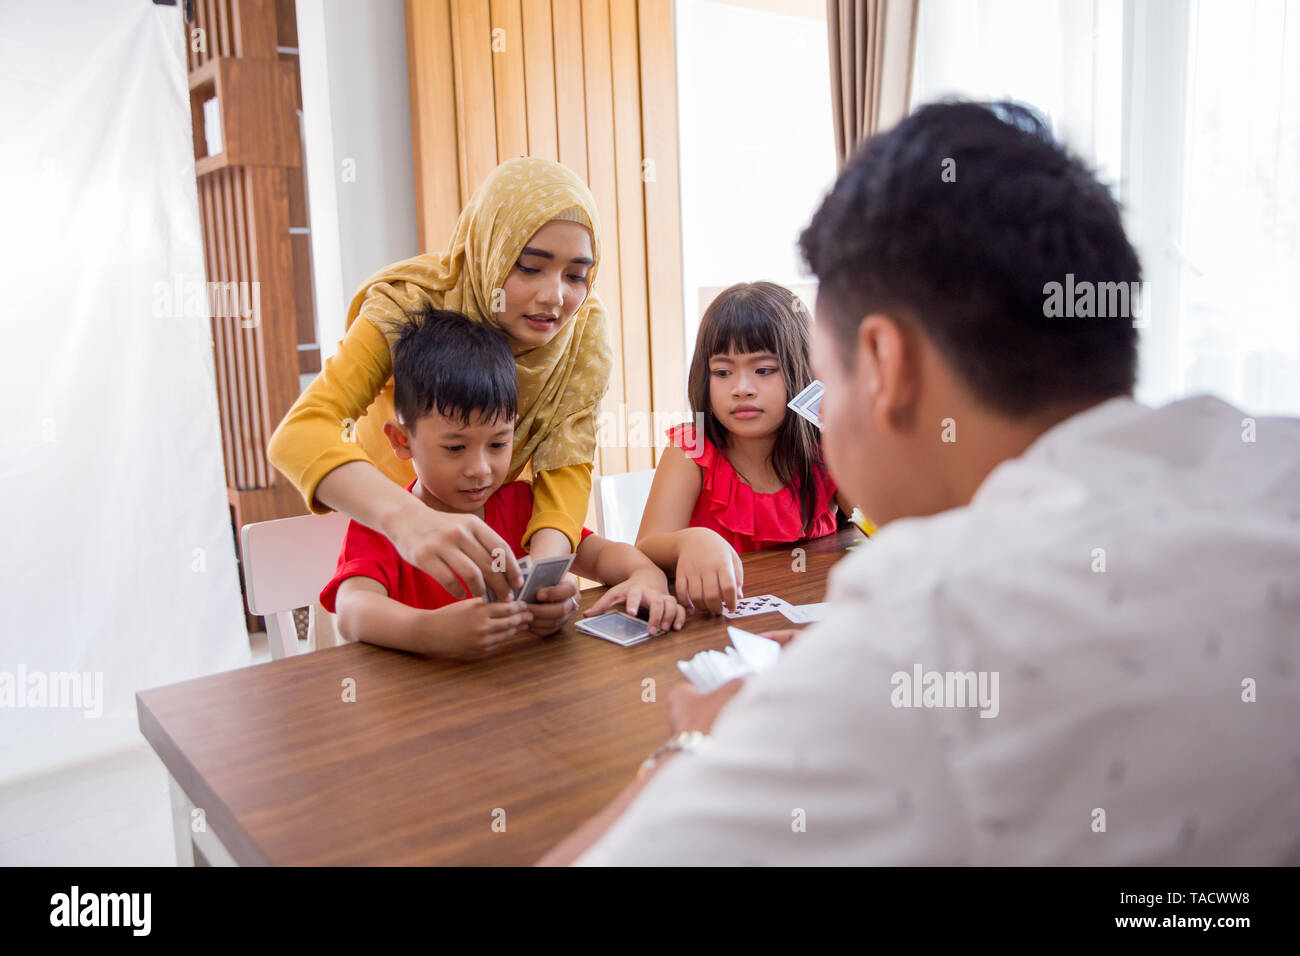 happy asian kids play card game together with parent at home - Stock Image